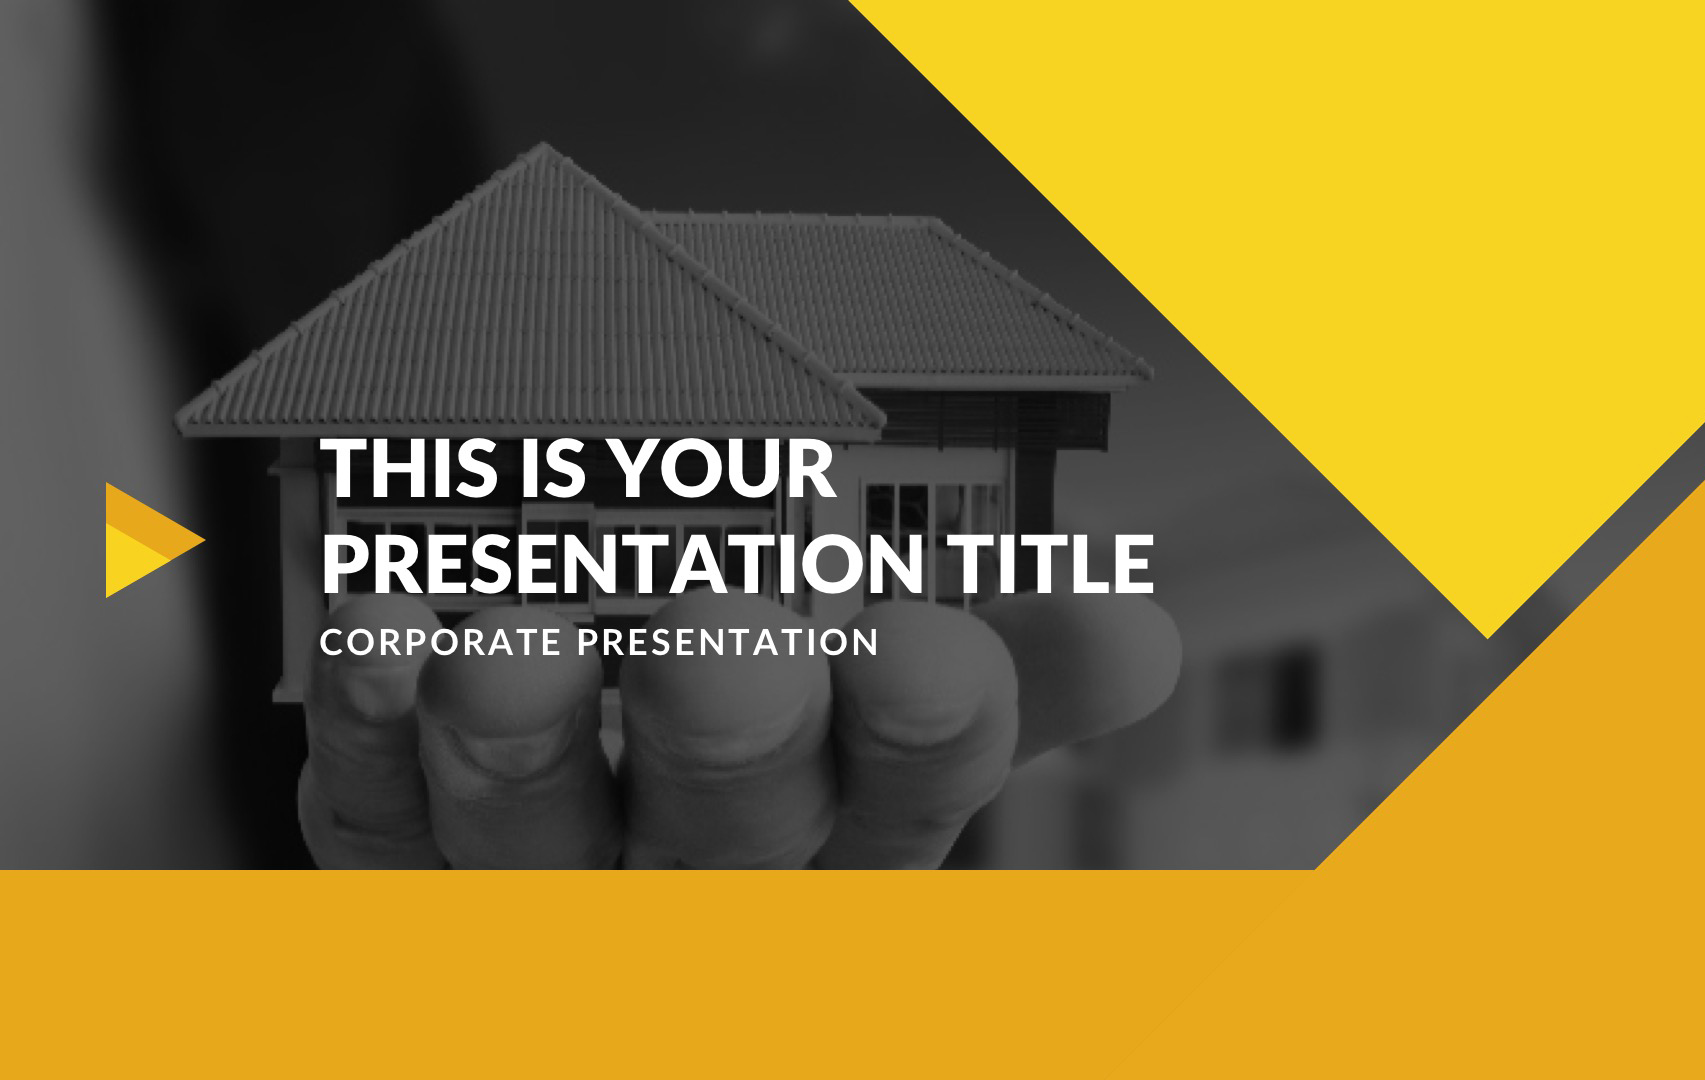 Novo Real Estate Free PowerPoint Template, Apple Keynote, Google Slides